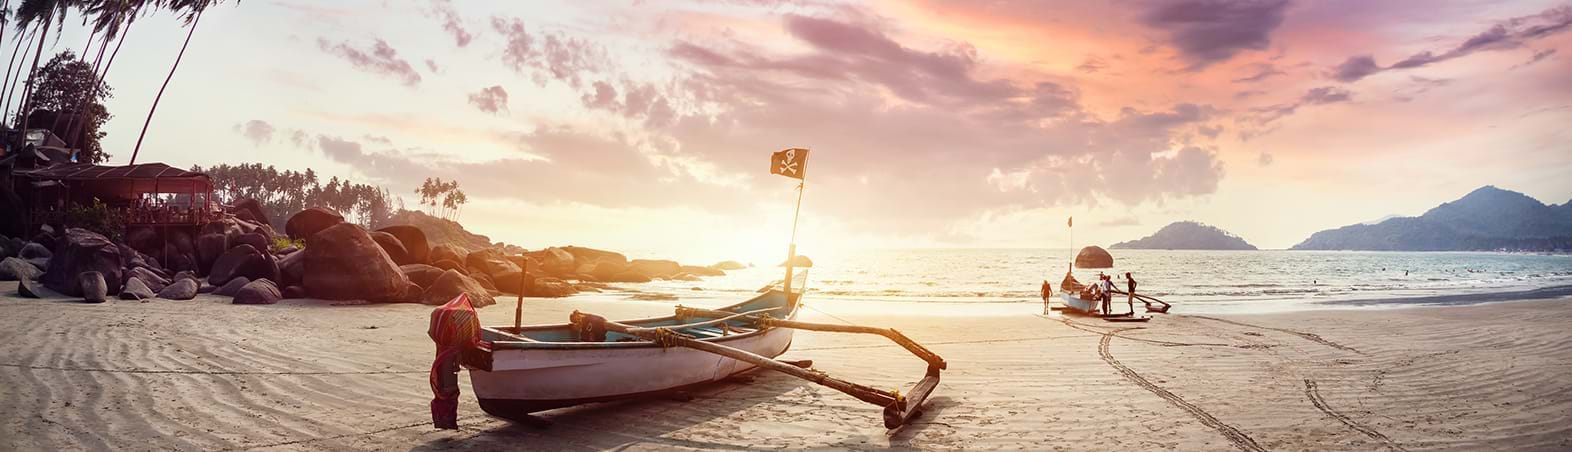 The Sunkissed Shores of India